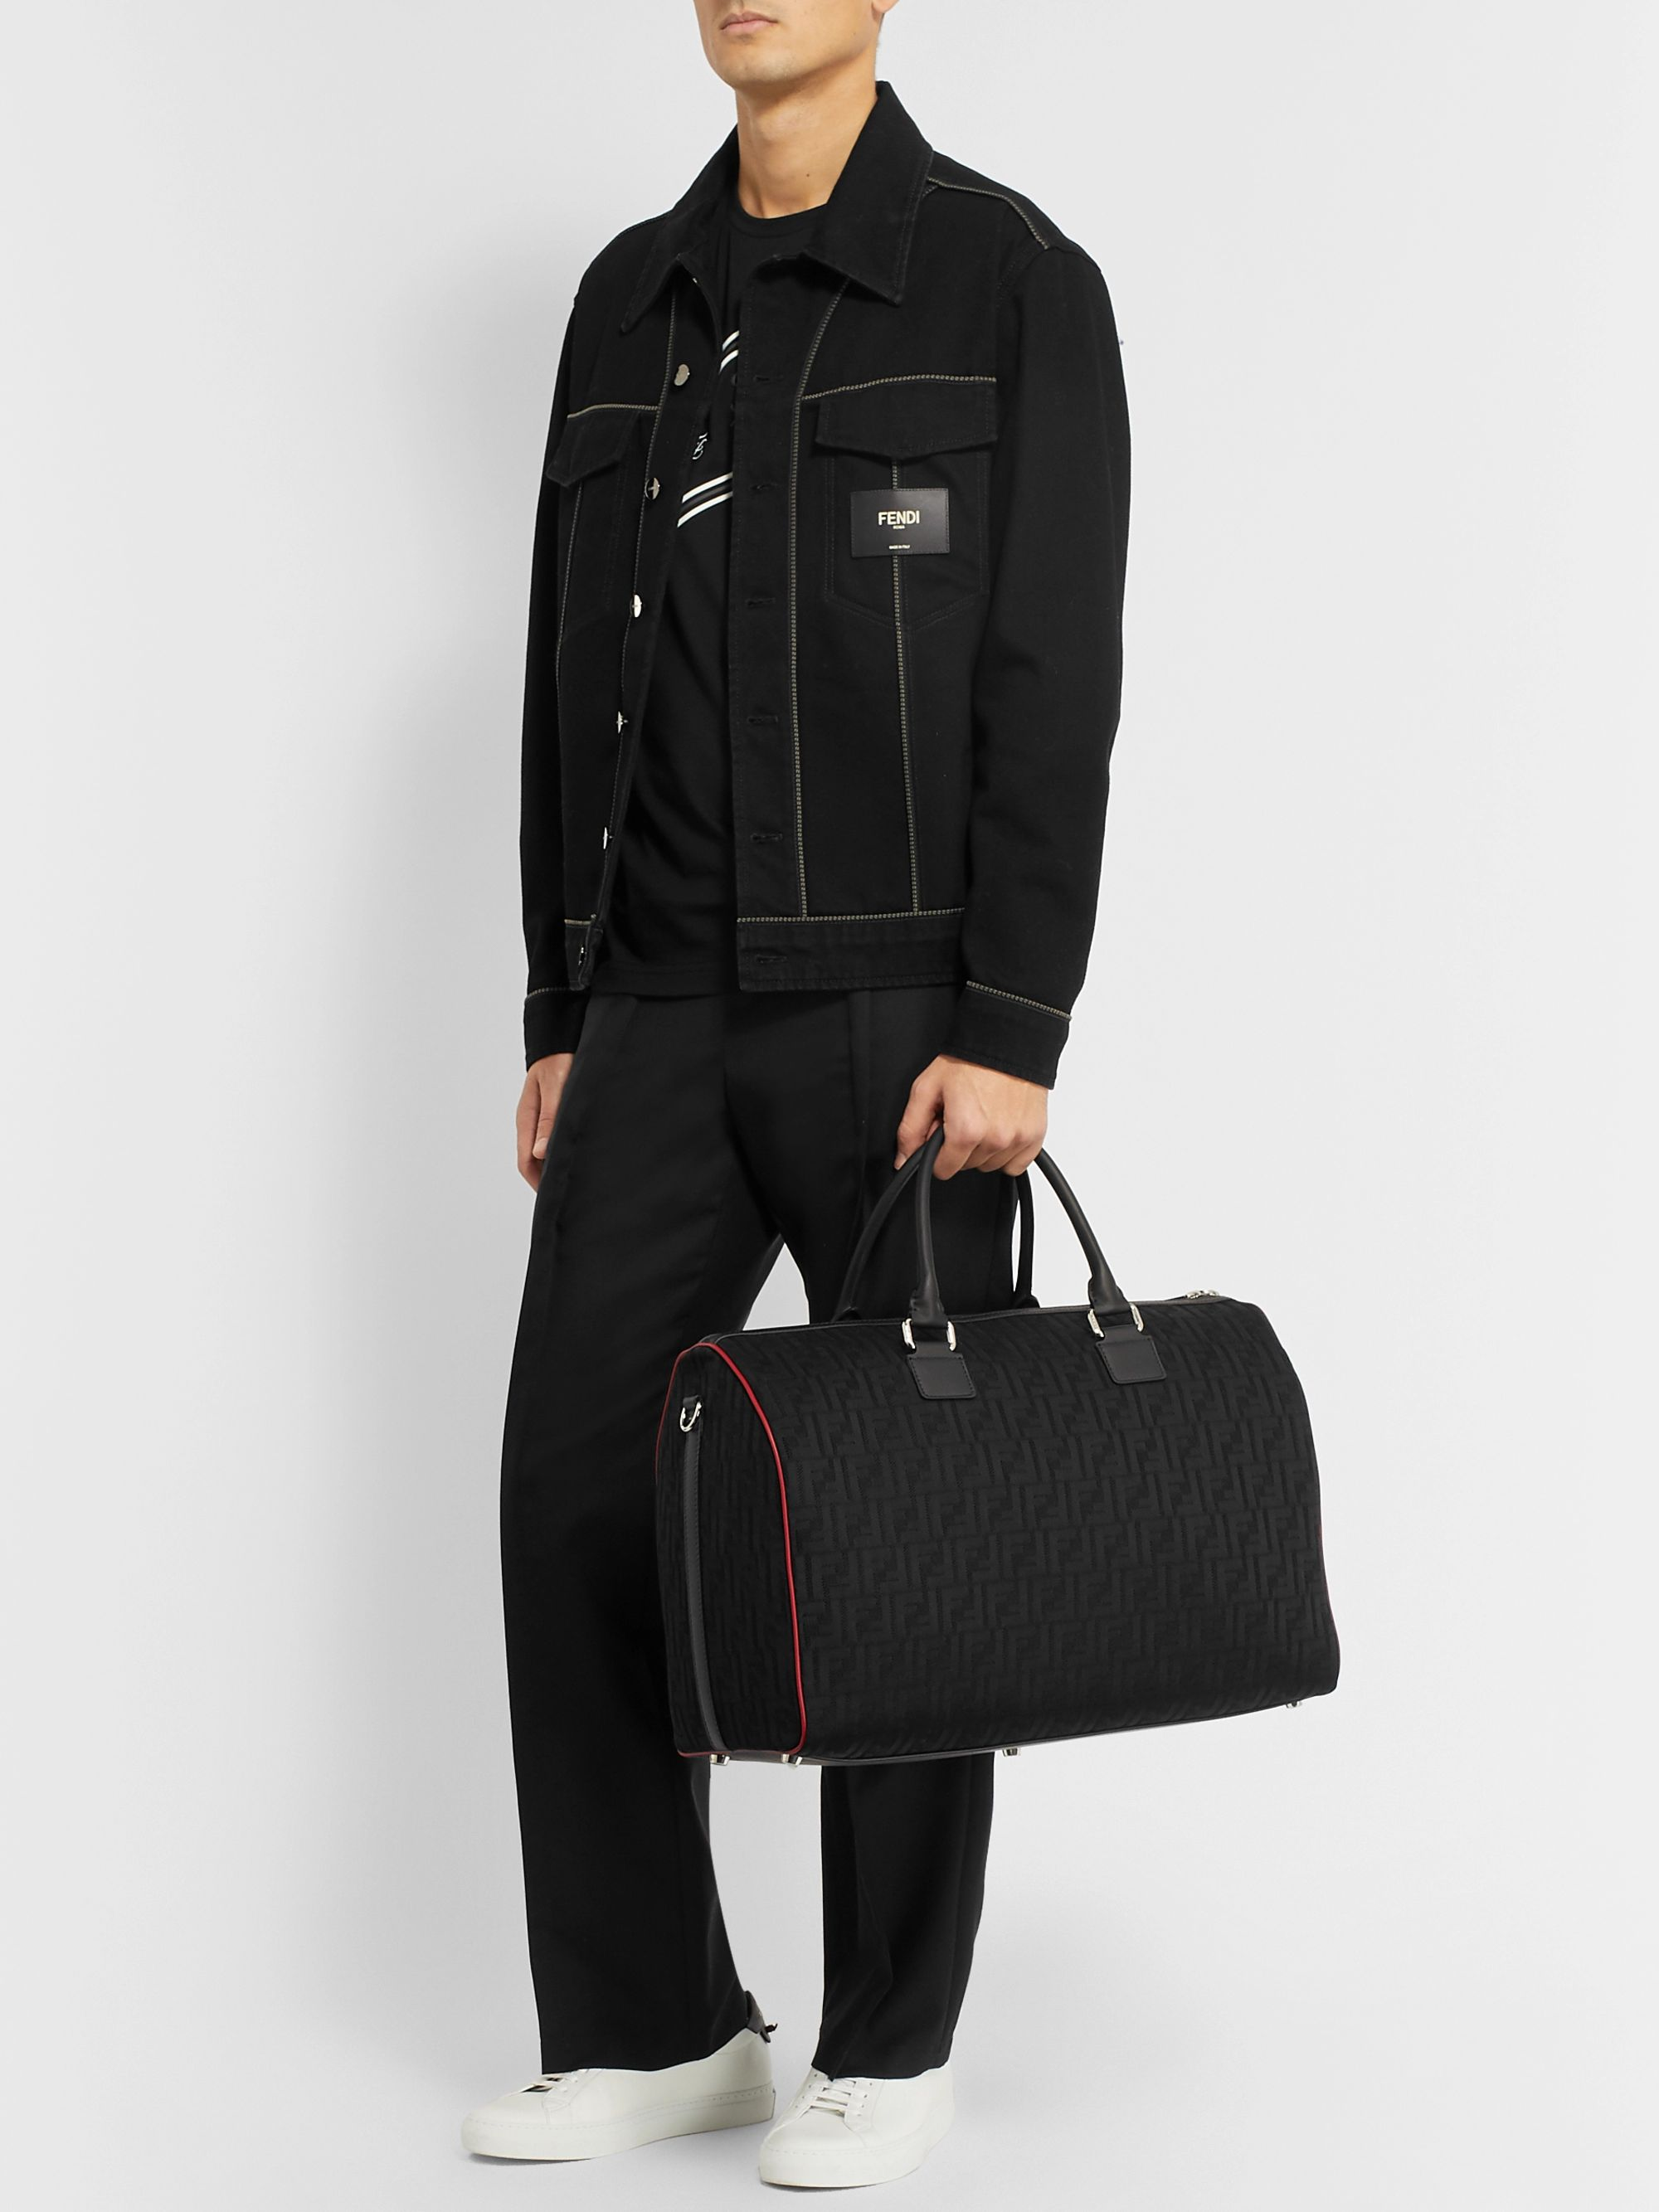 Fendi Leather-Trimmed Logo-Jacquard Mesh Duffle Bag